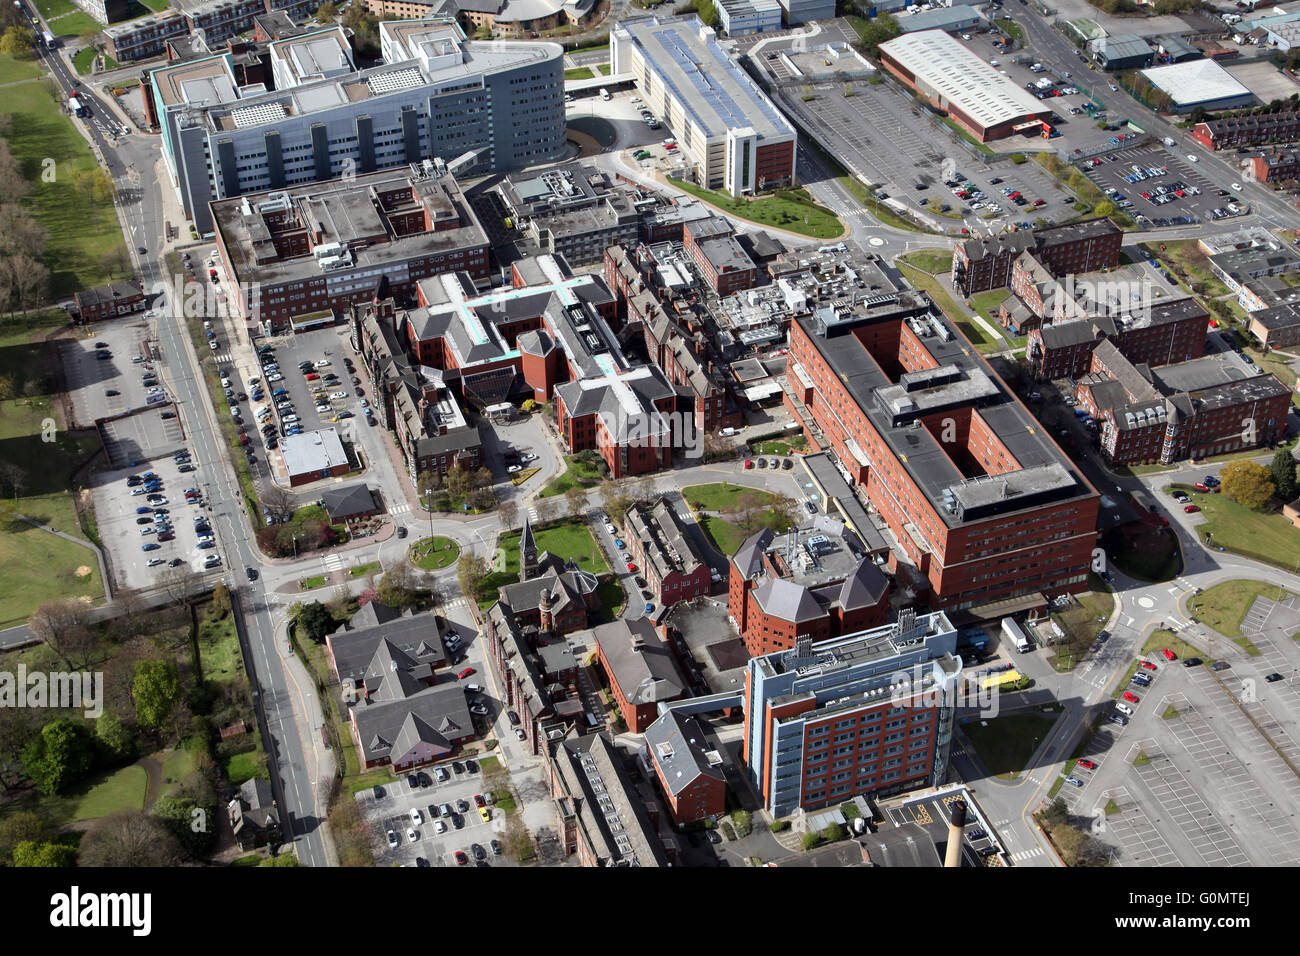 aerial view of Jimmy's - St James's Hospital in Leeds, West Yorkshire, UK - Stock Image